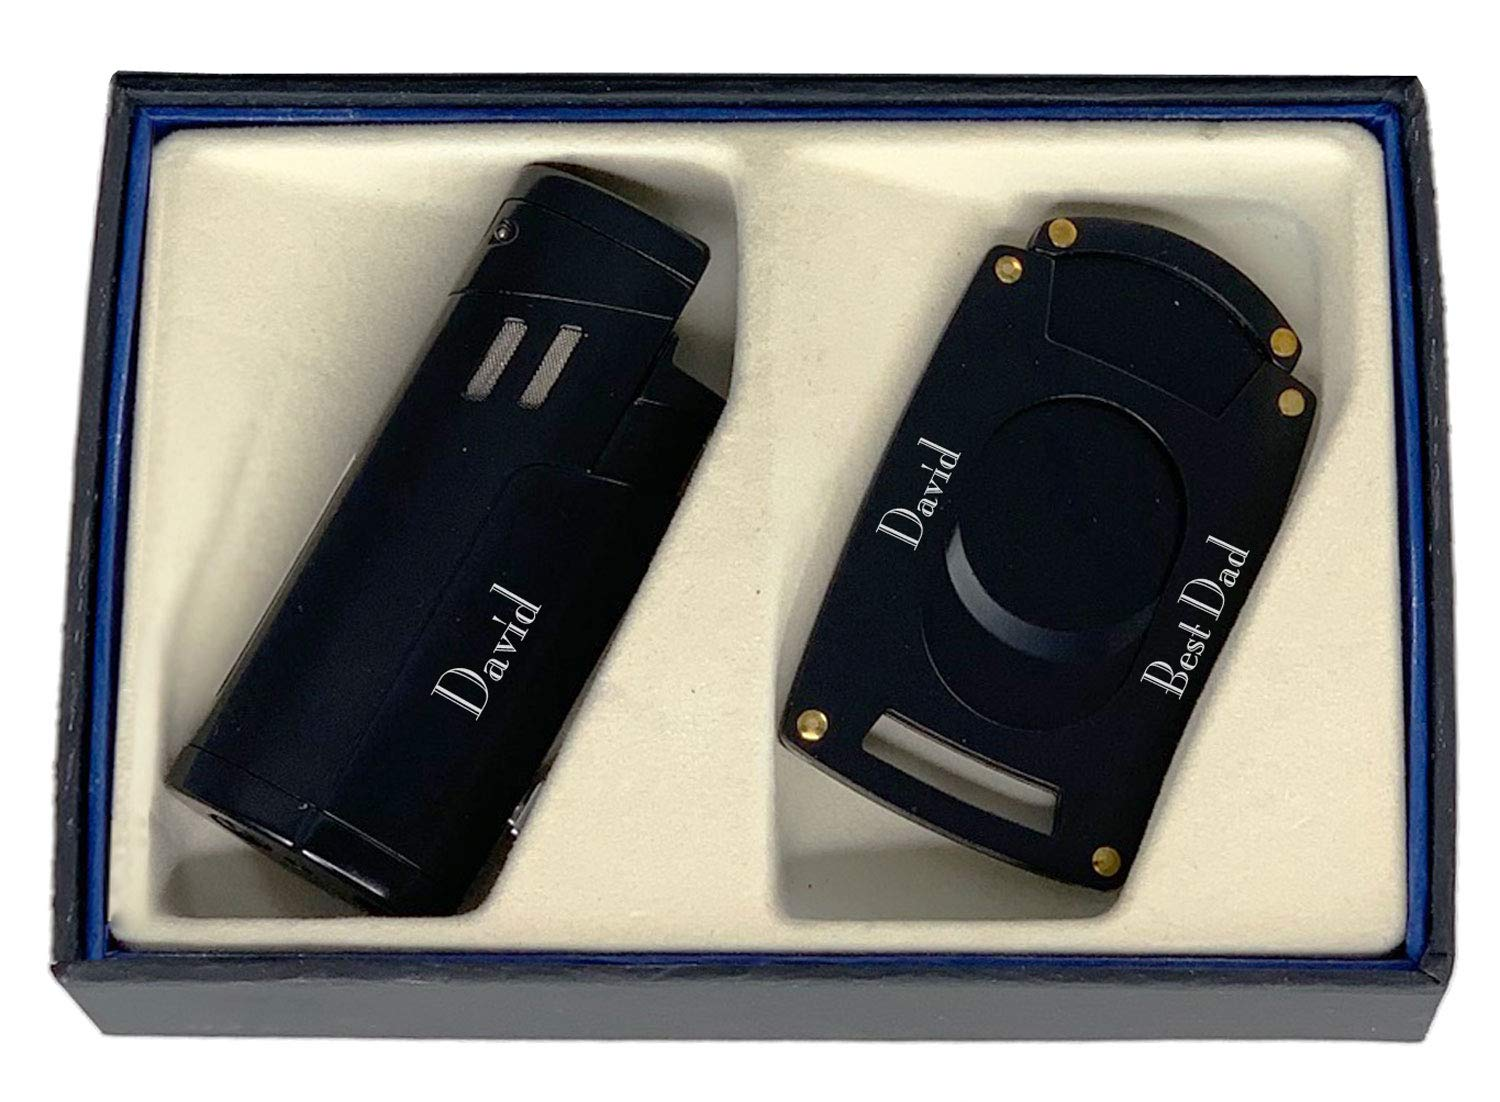 Personalized Visol Shavano Cigar Lighter and Cutter Gift Set - Black with Free Laser Engraving